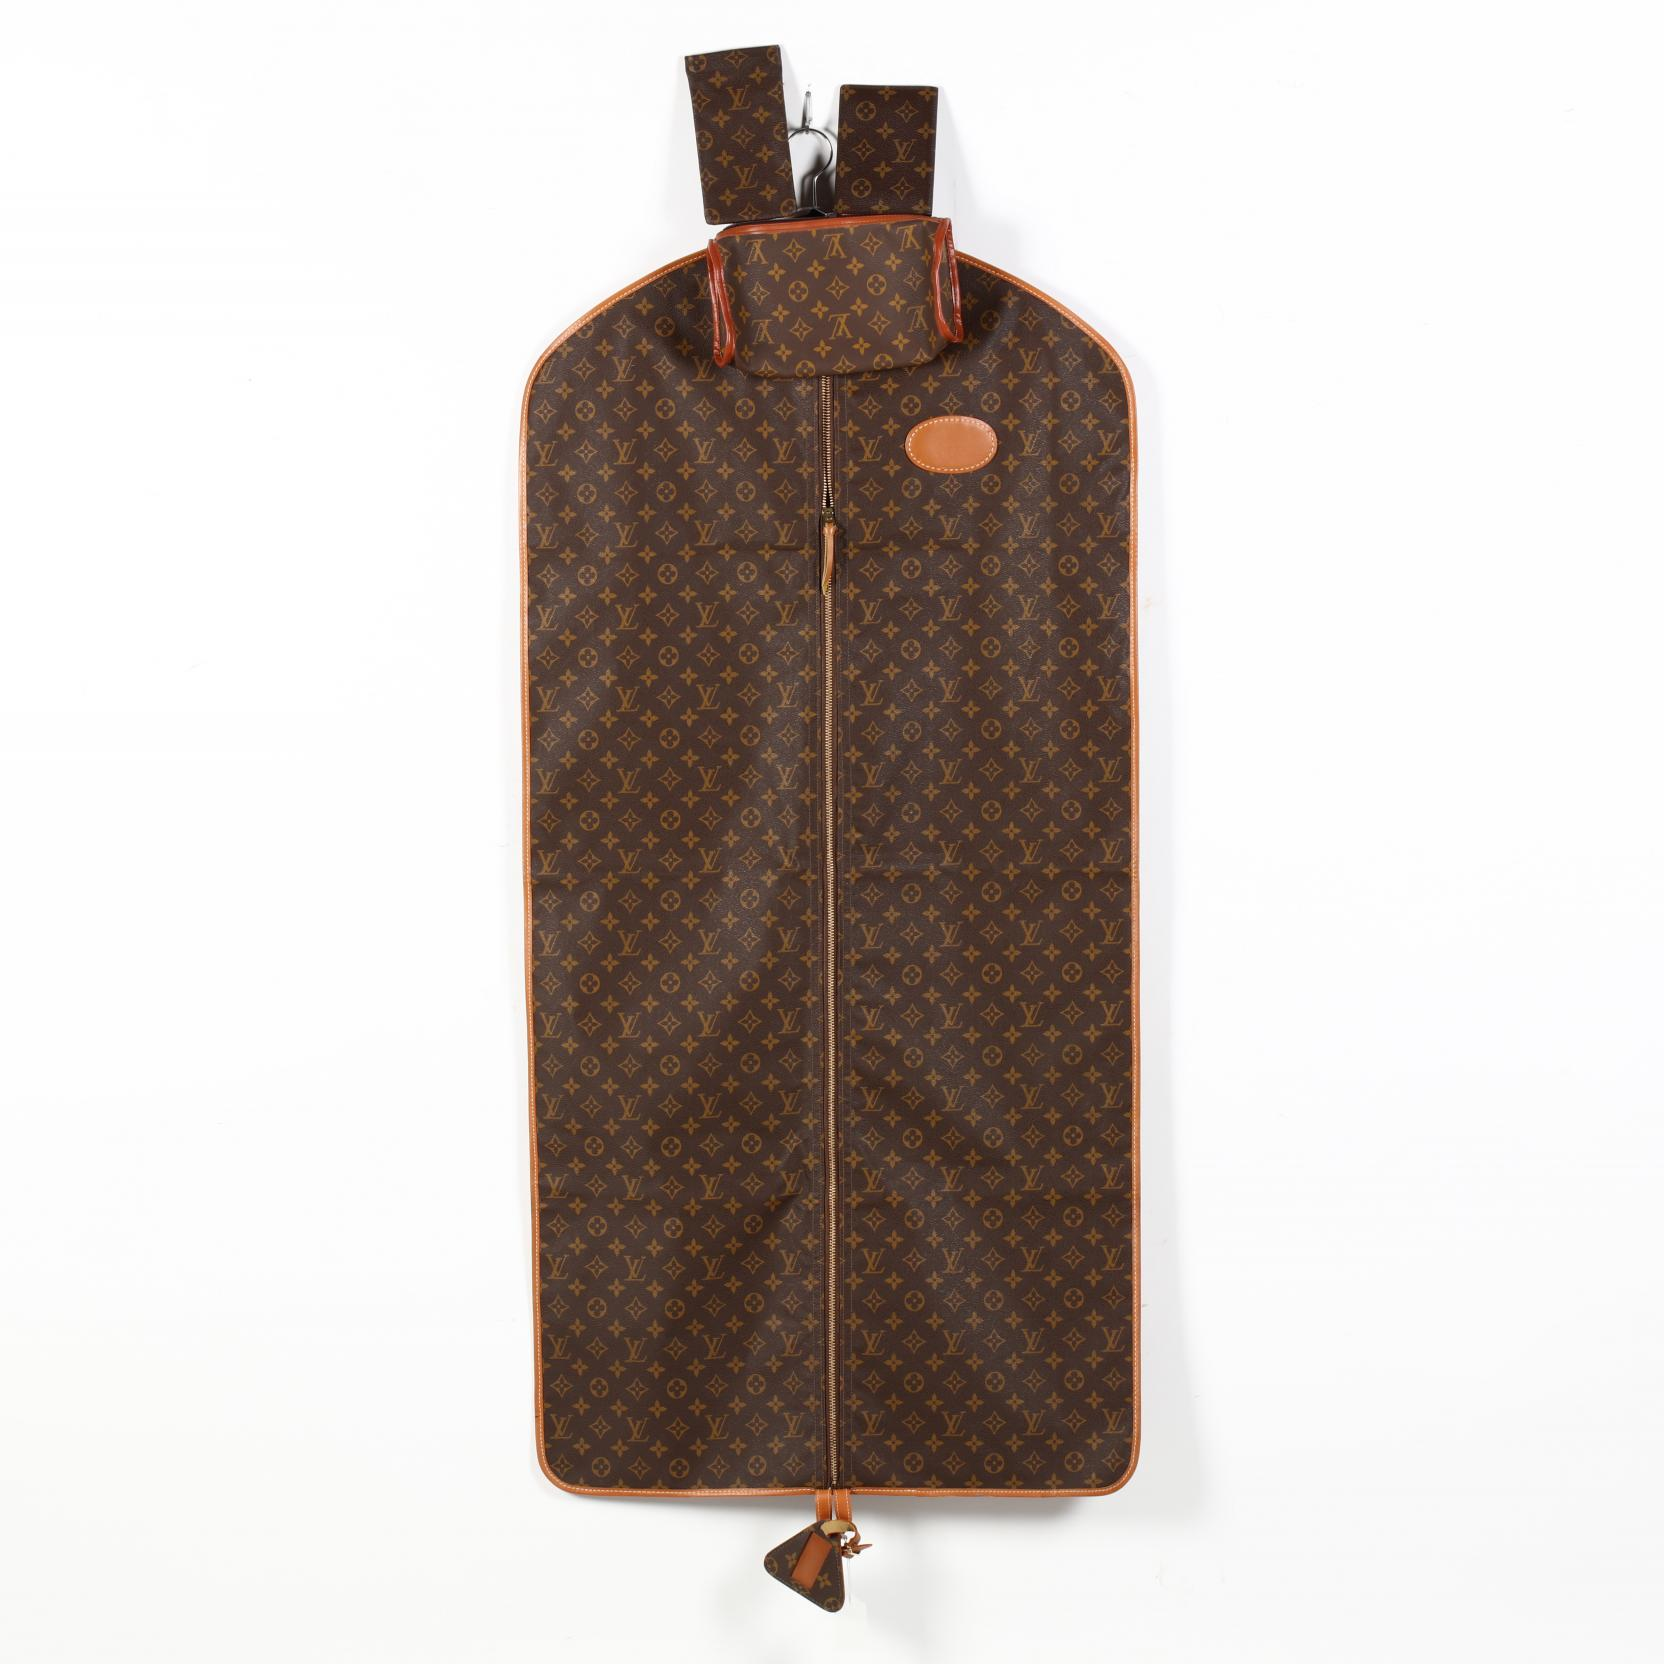 a-group-of-monogram-canvas-accessories